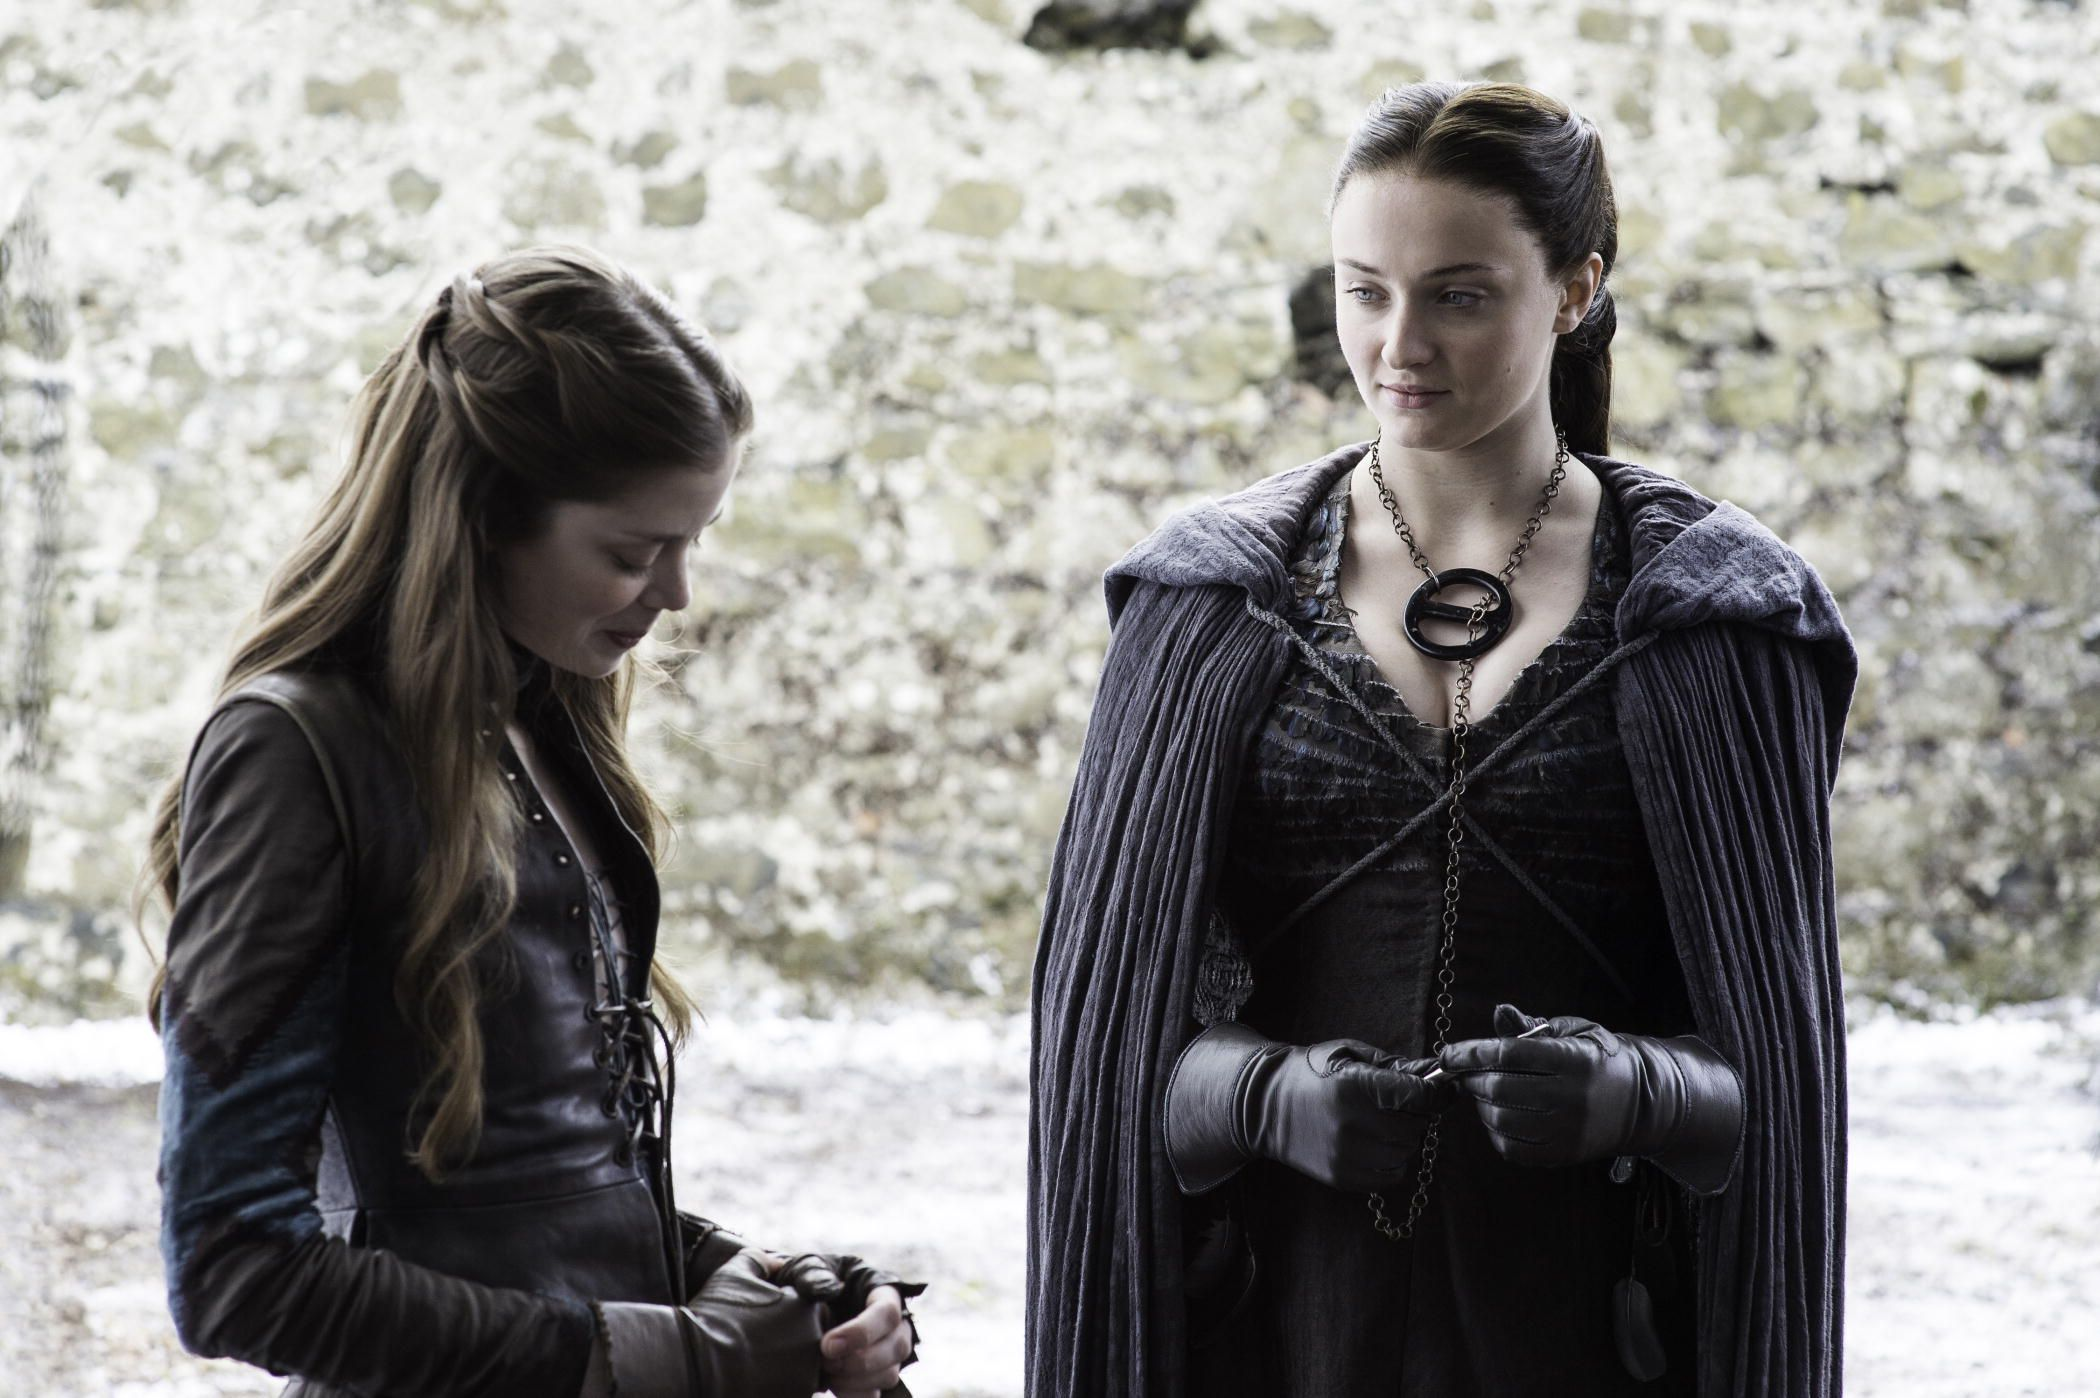 The Sneaky Game of Thrones Death Sentence You Might Have Missed